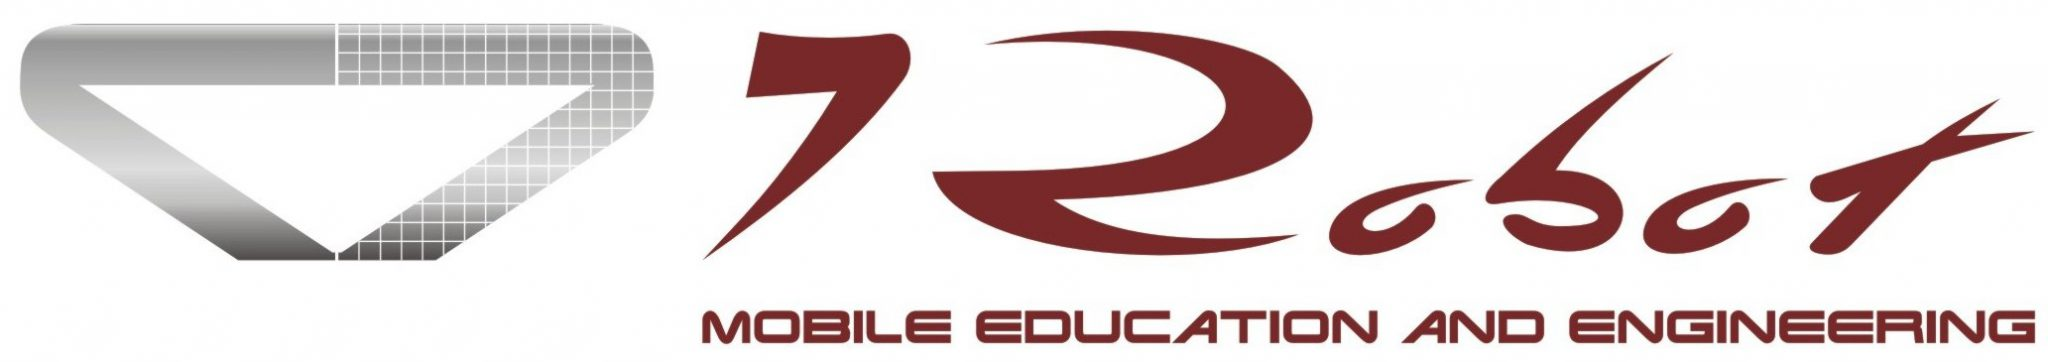 7Robot – Mobile Education and Engineering